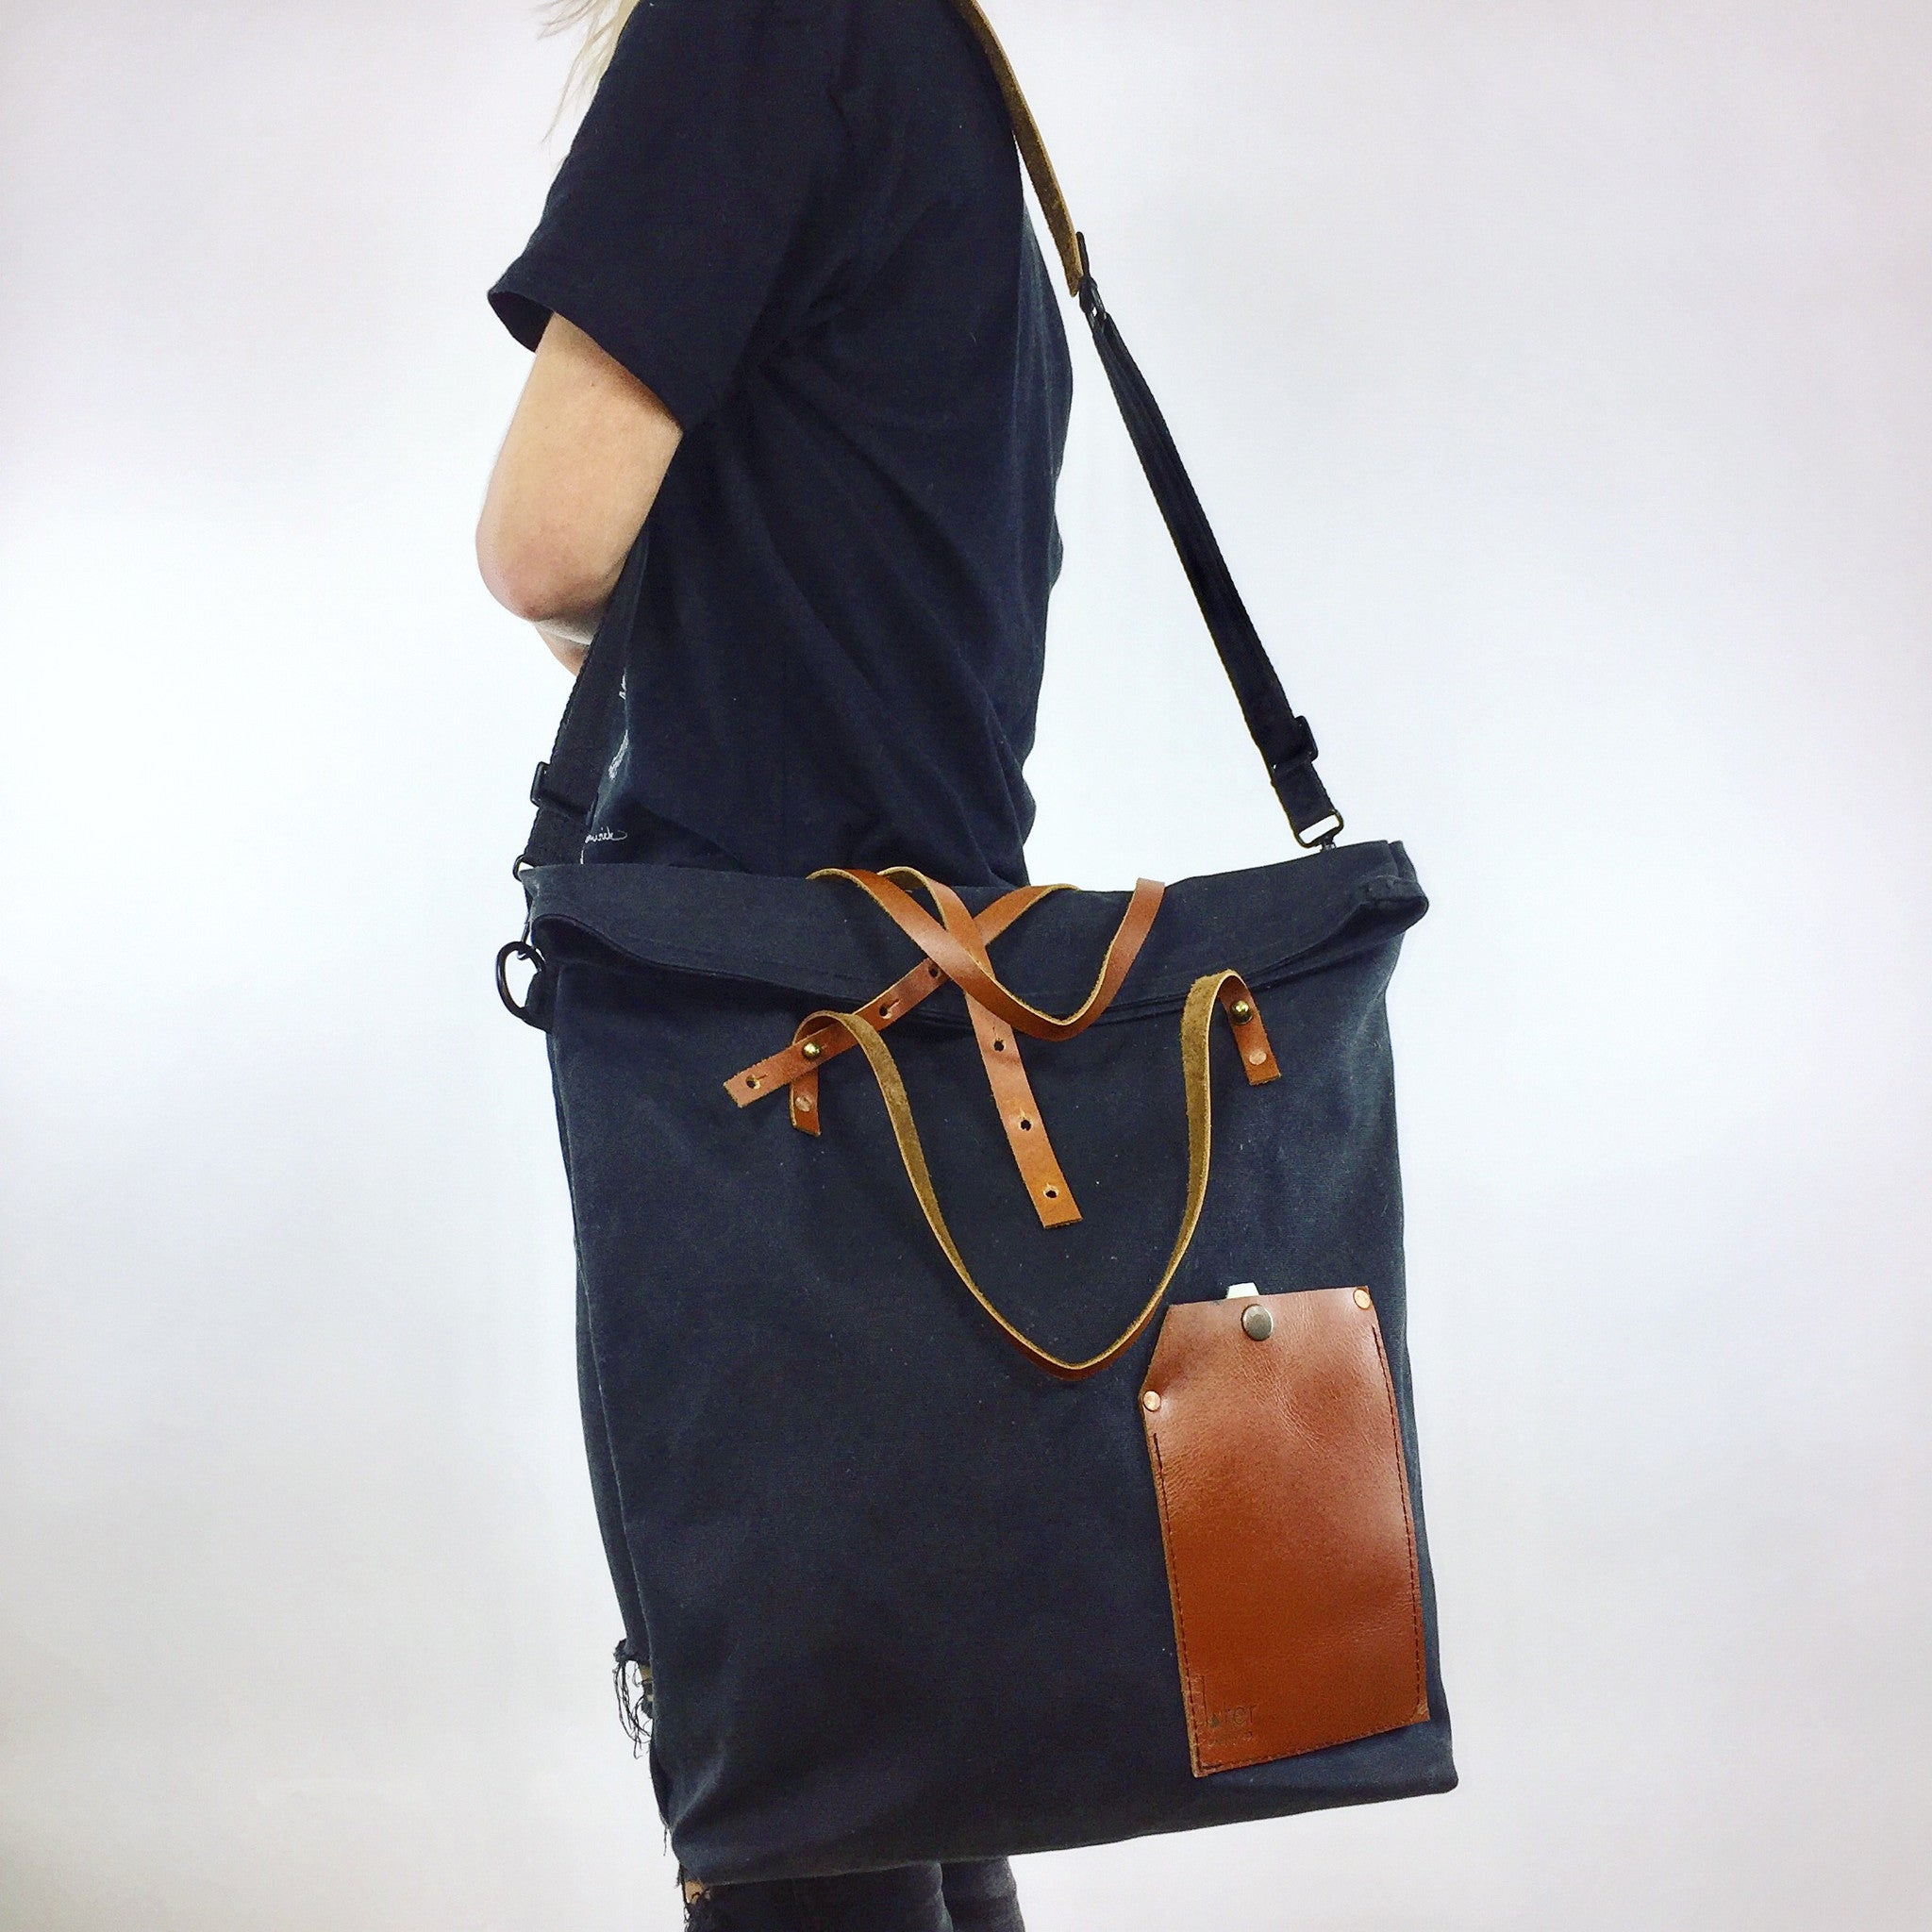 Later Supply Co. Side Bag